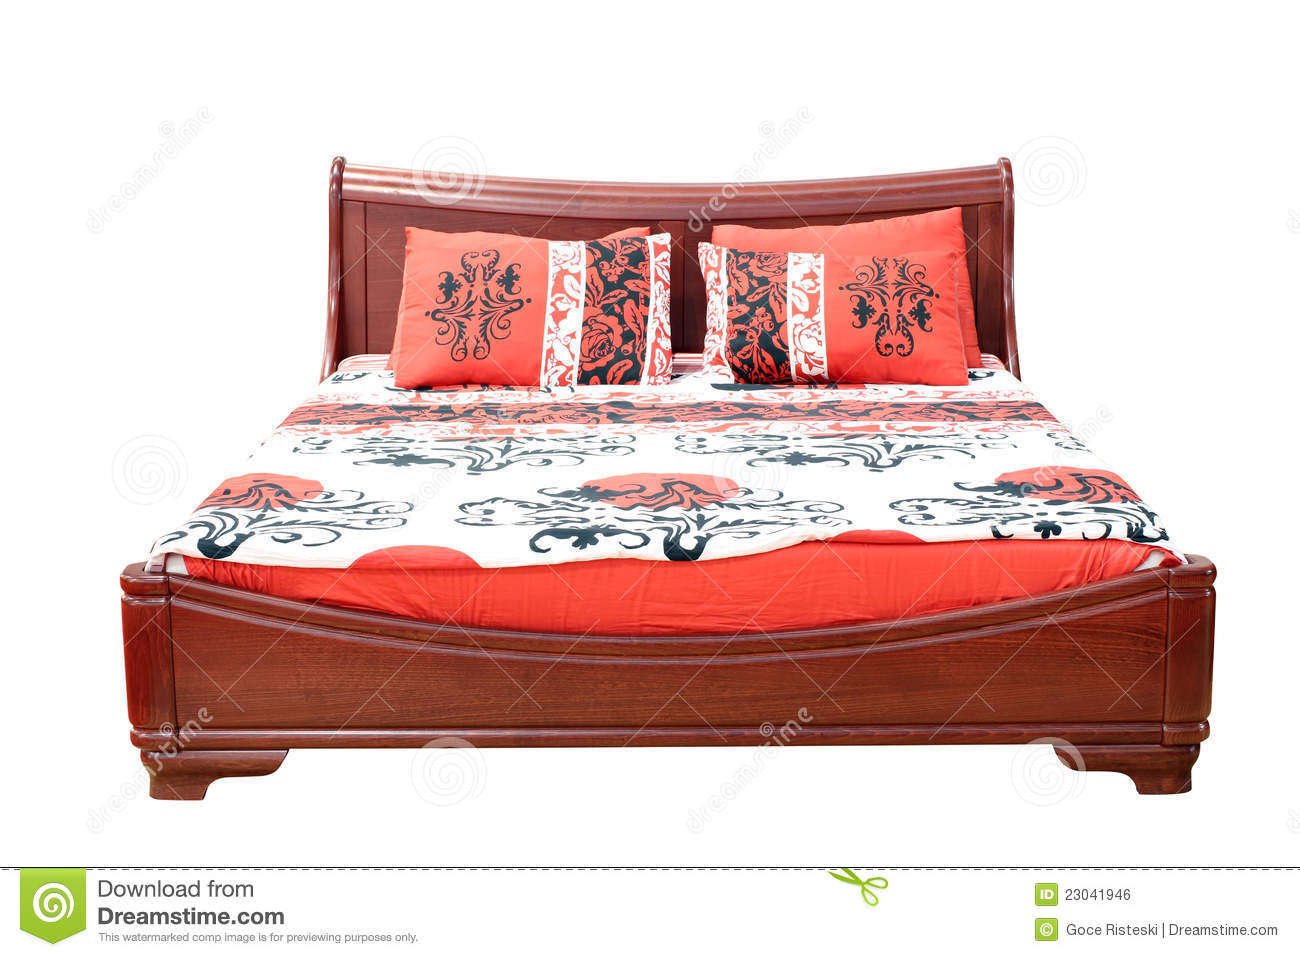 Very Impressive portraiture of Wooden Bed With Colorful Linen Royalty Free Stock Image Image  with #BB1E10 color and 1300x957 pixels